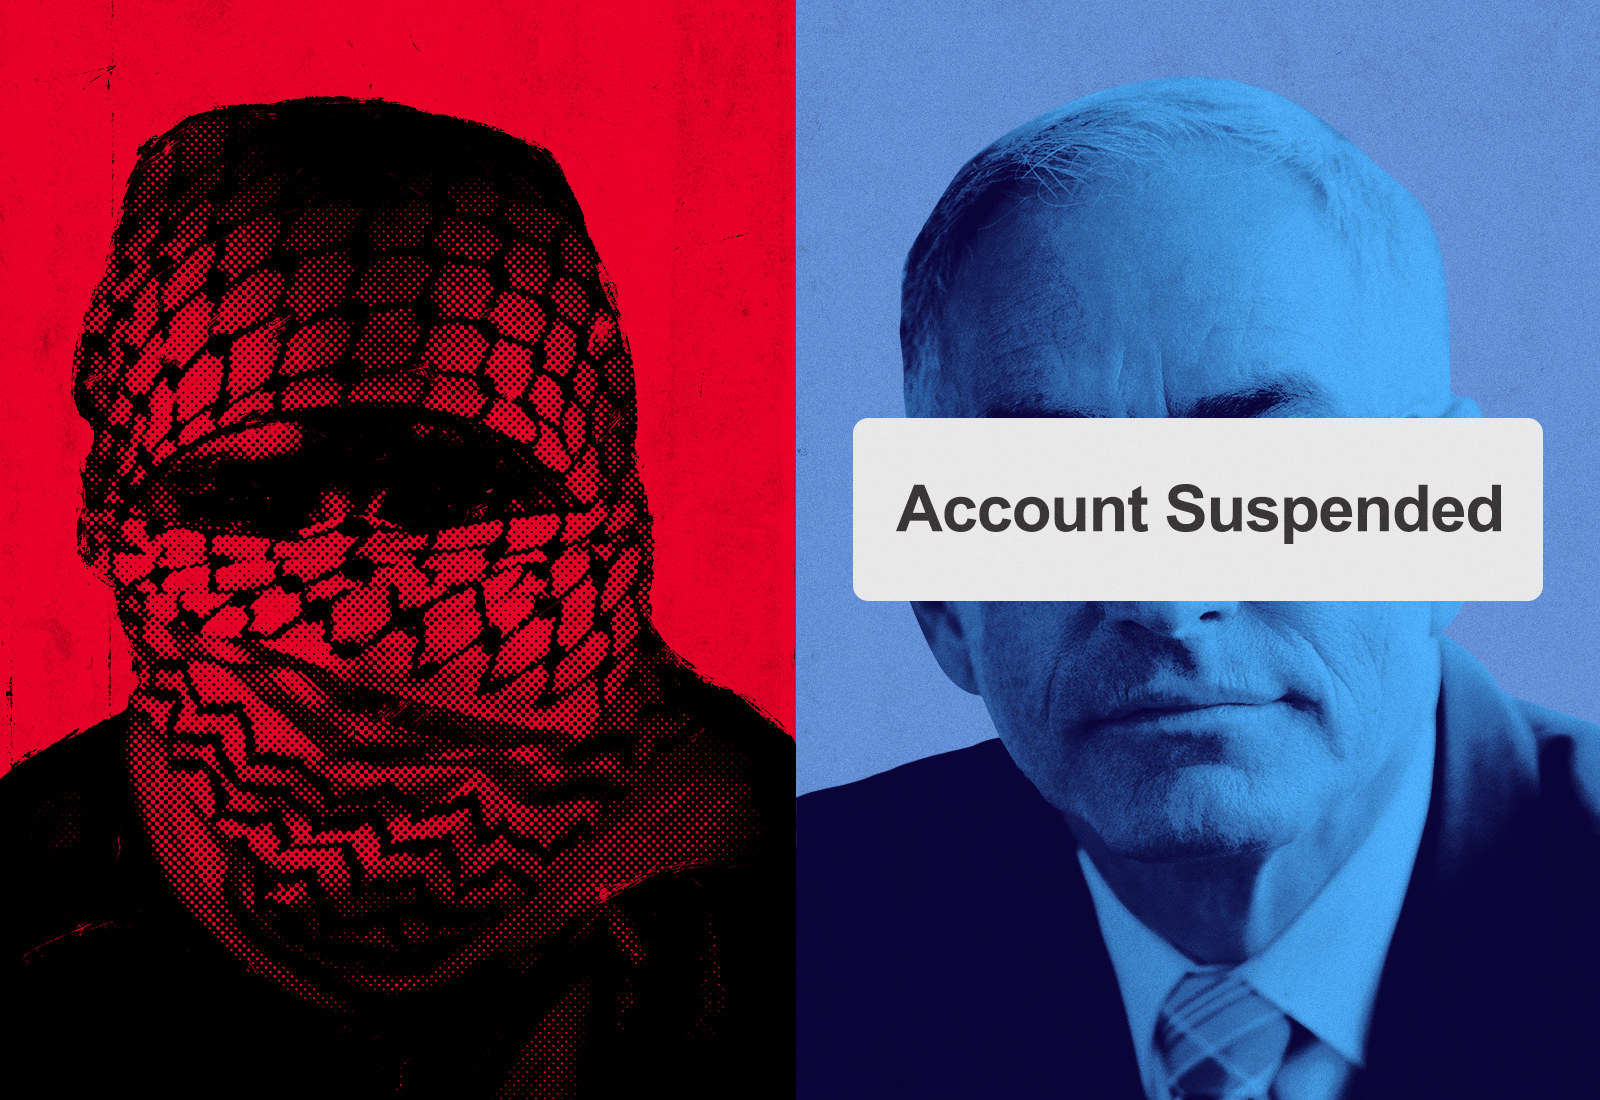 Now Academics Studying ISIS Are Feeling The Heat Of An Internet Crackdown